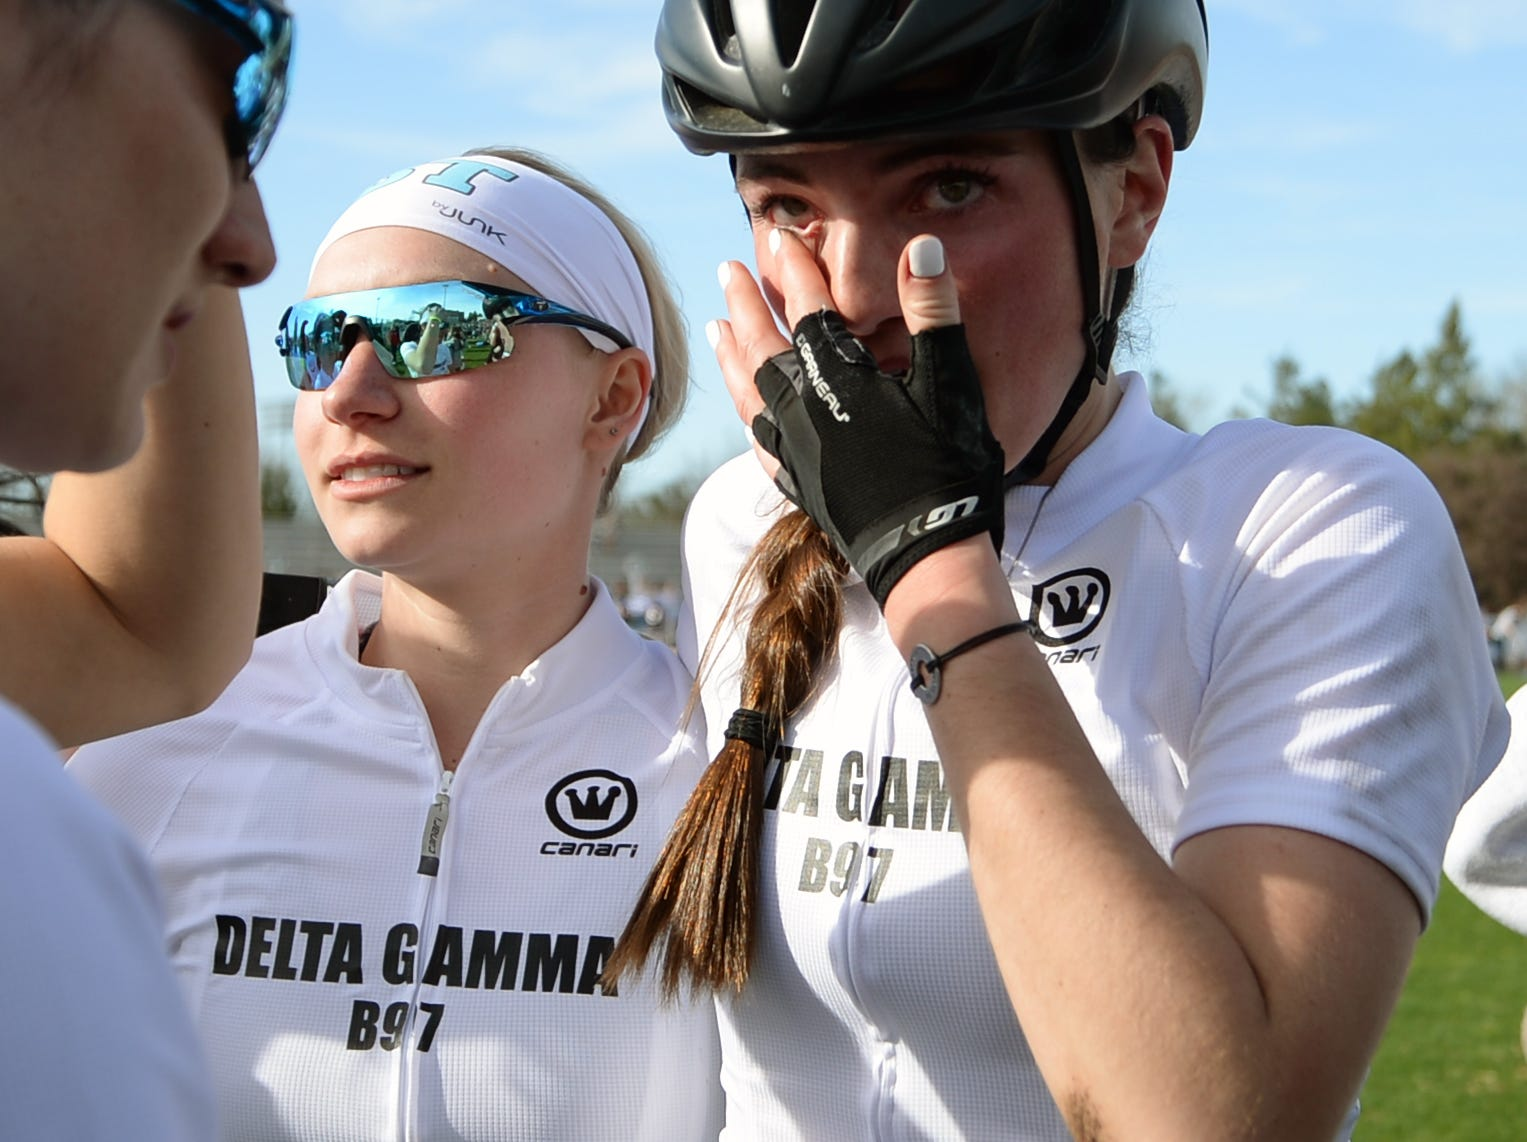 Delta Gamma cries after failing to win the women's Little 500 at Bill Armstrong Stadium in Bloomington, Ind., on Friday, April 12, 2019.